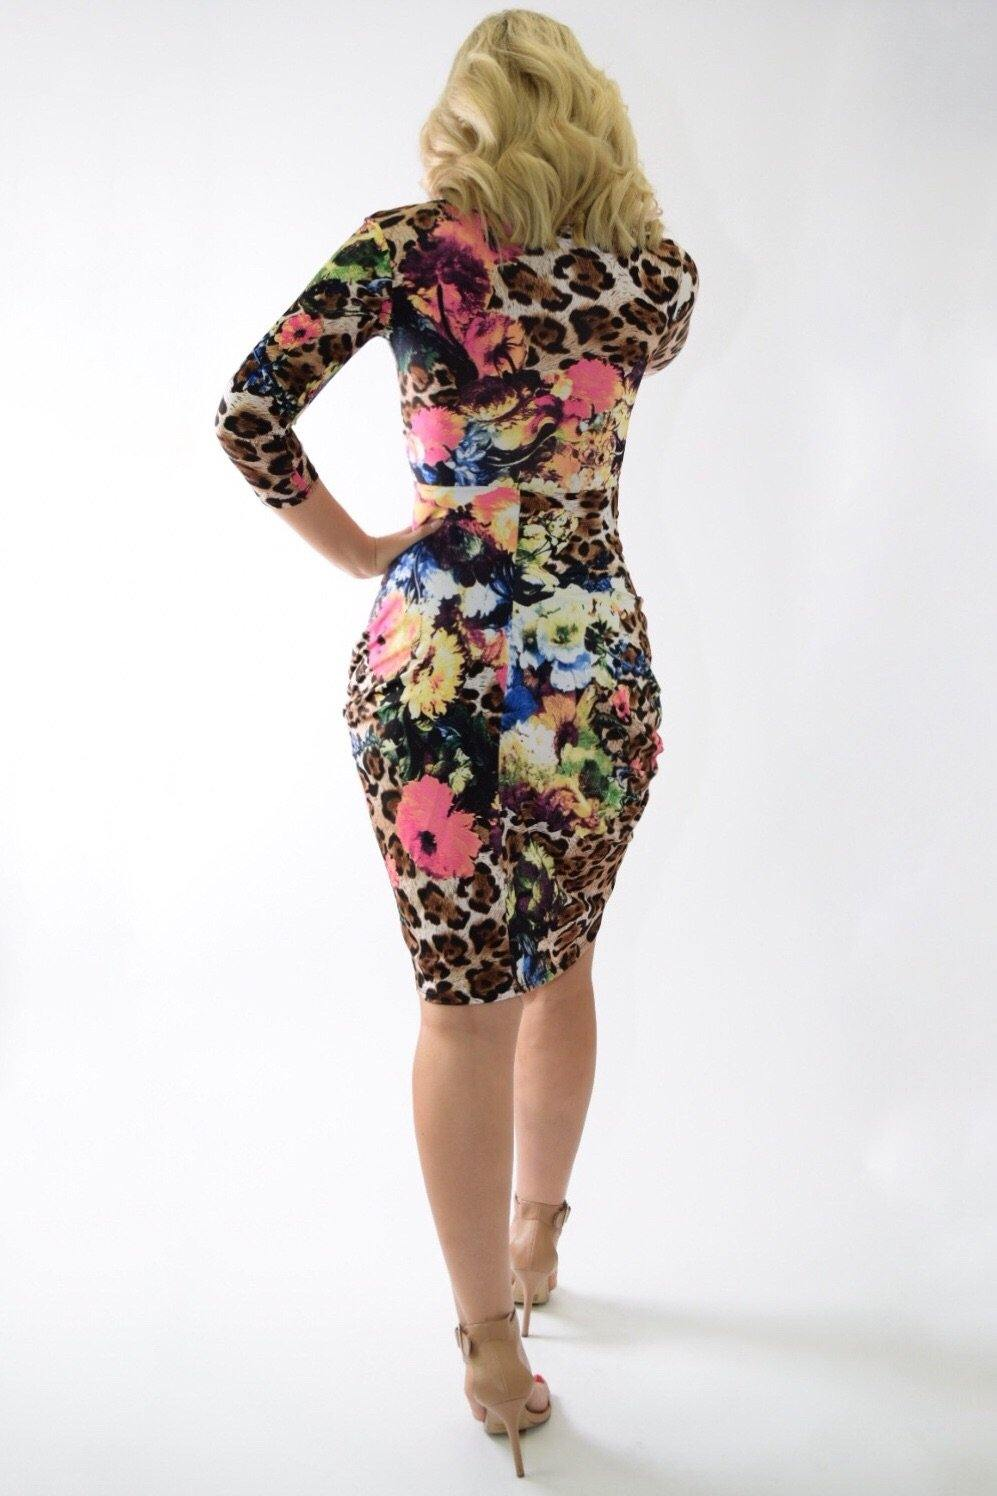 Shana wild leopard dress with floral print